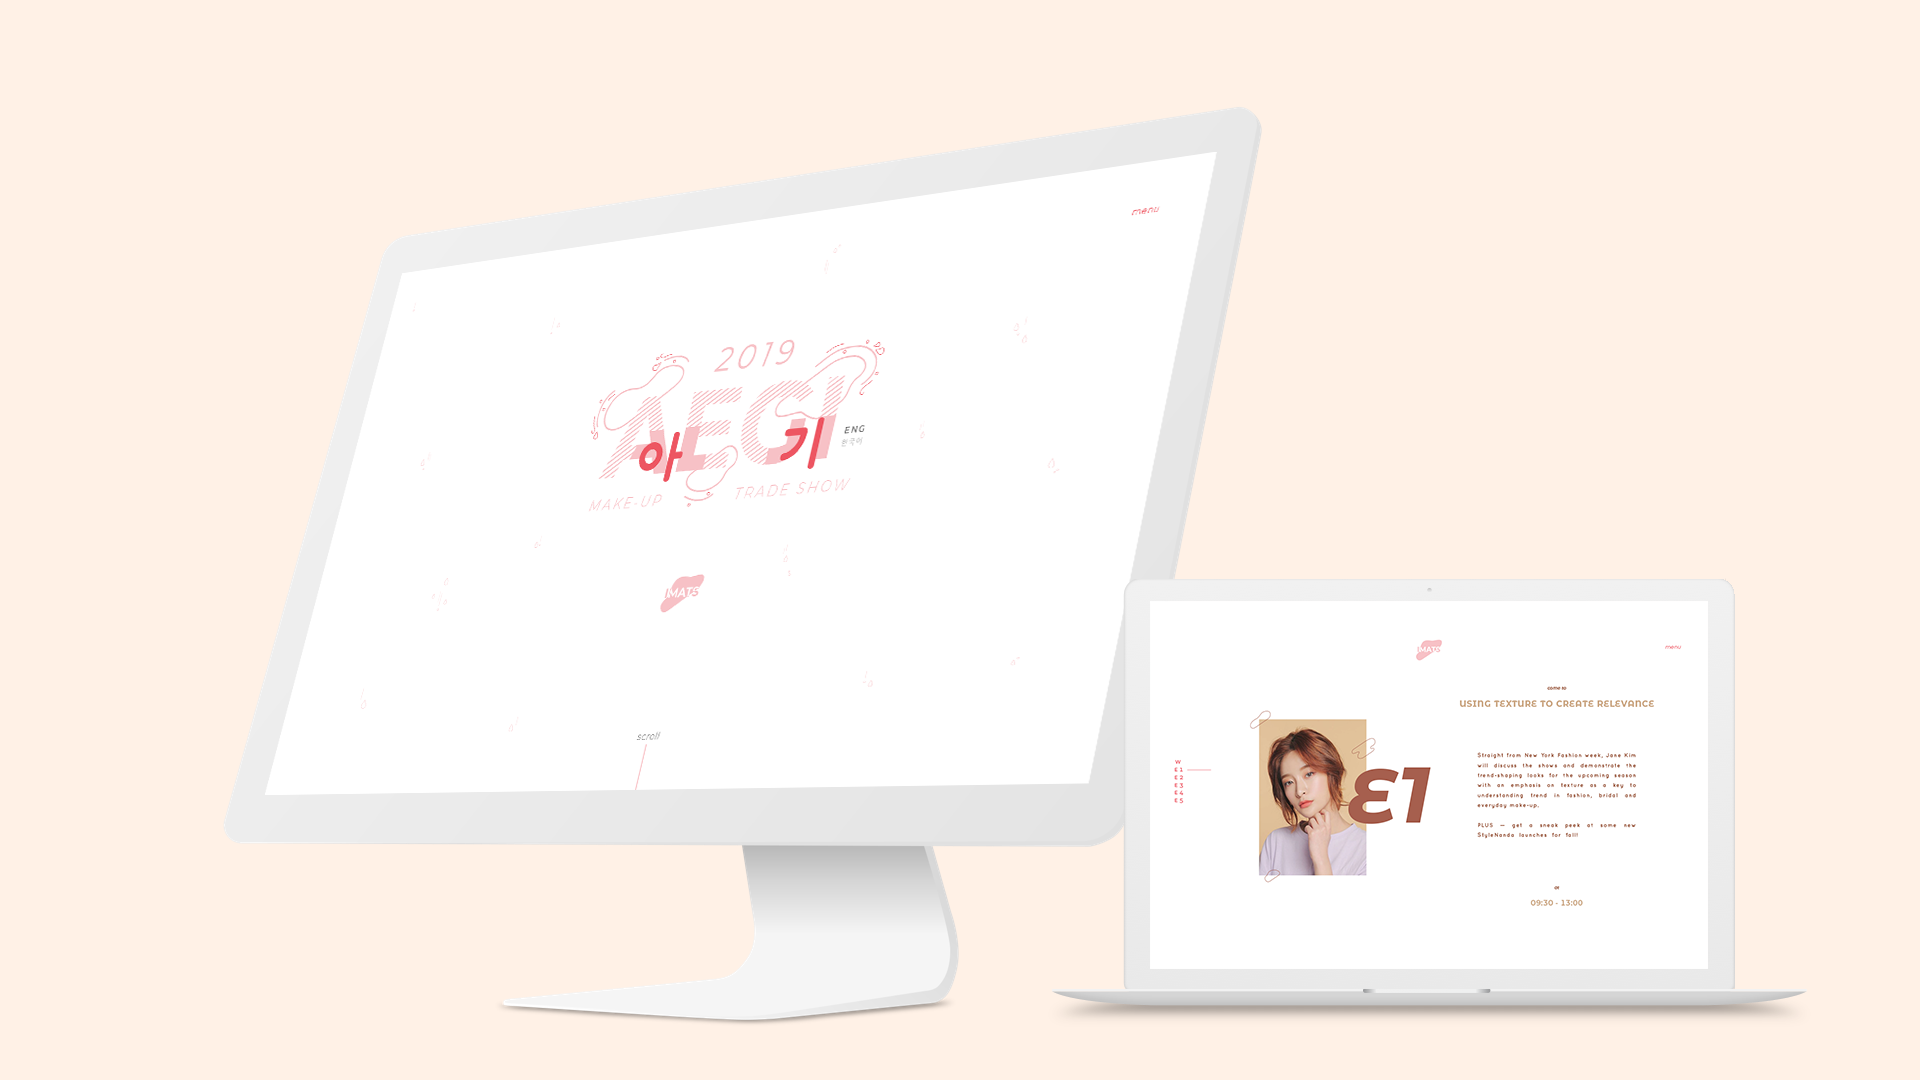 Mockup for responsive web design and branding for AEGI (a makeup trade show).